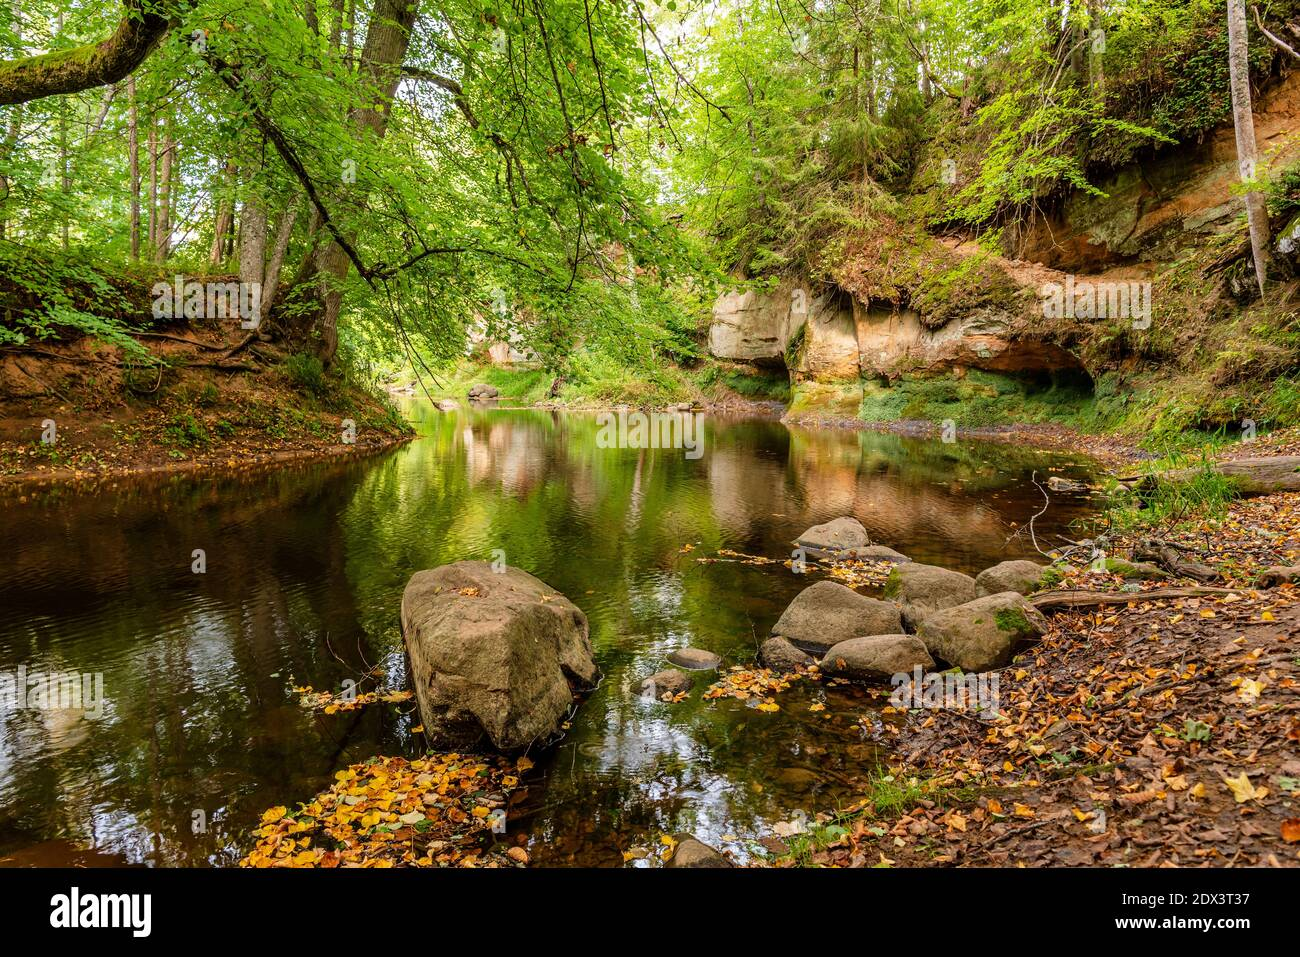 surrounded by forest, the steep bank of the river with the calm river water flowing past, in which the surrounding natural beauty can be seen as a ref Stock Photo